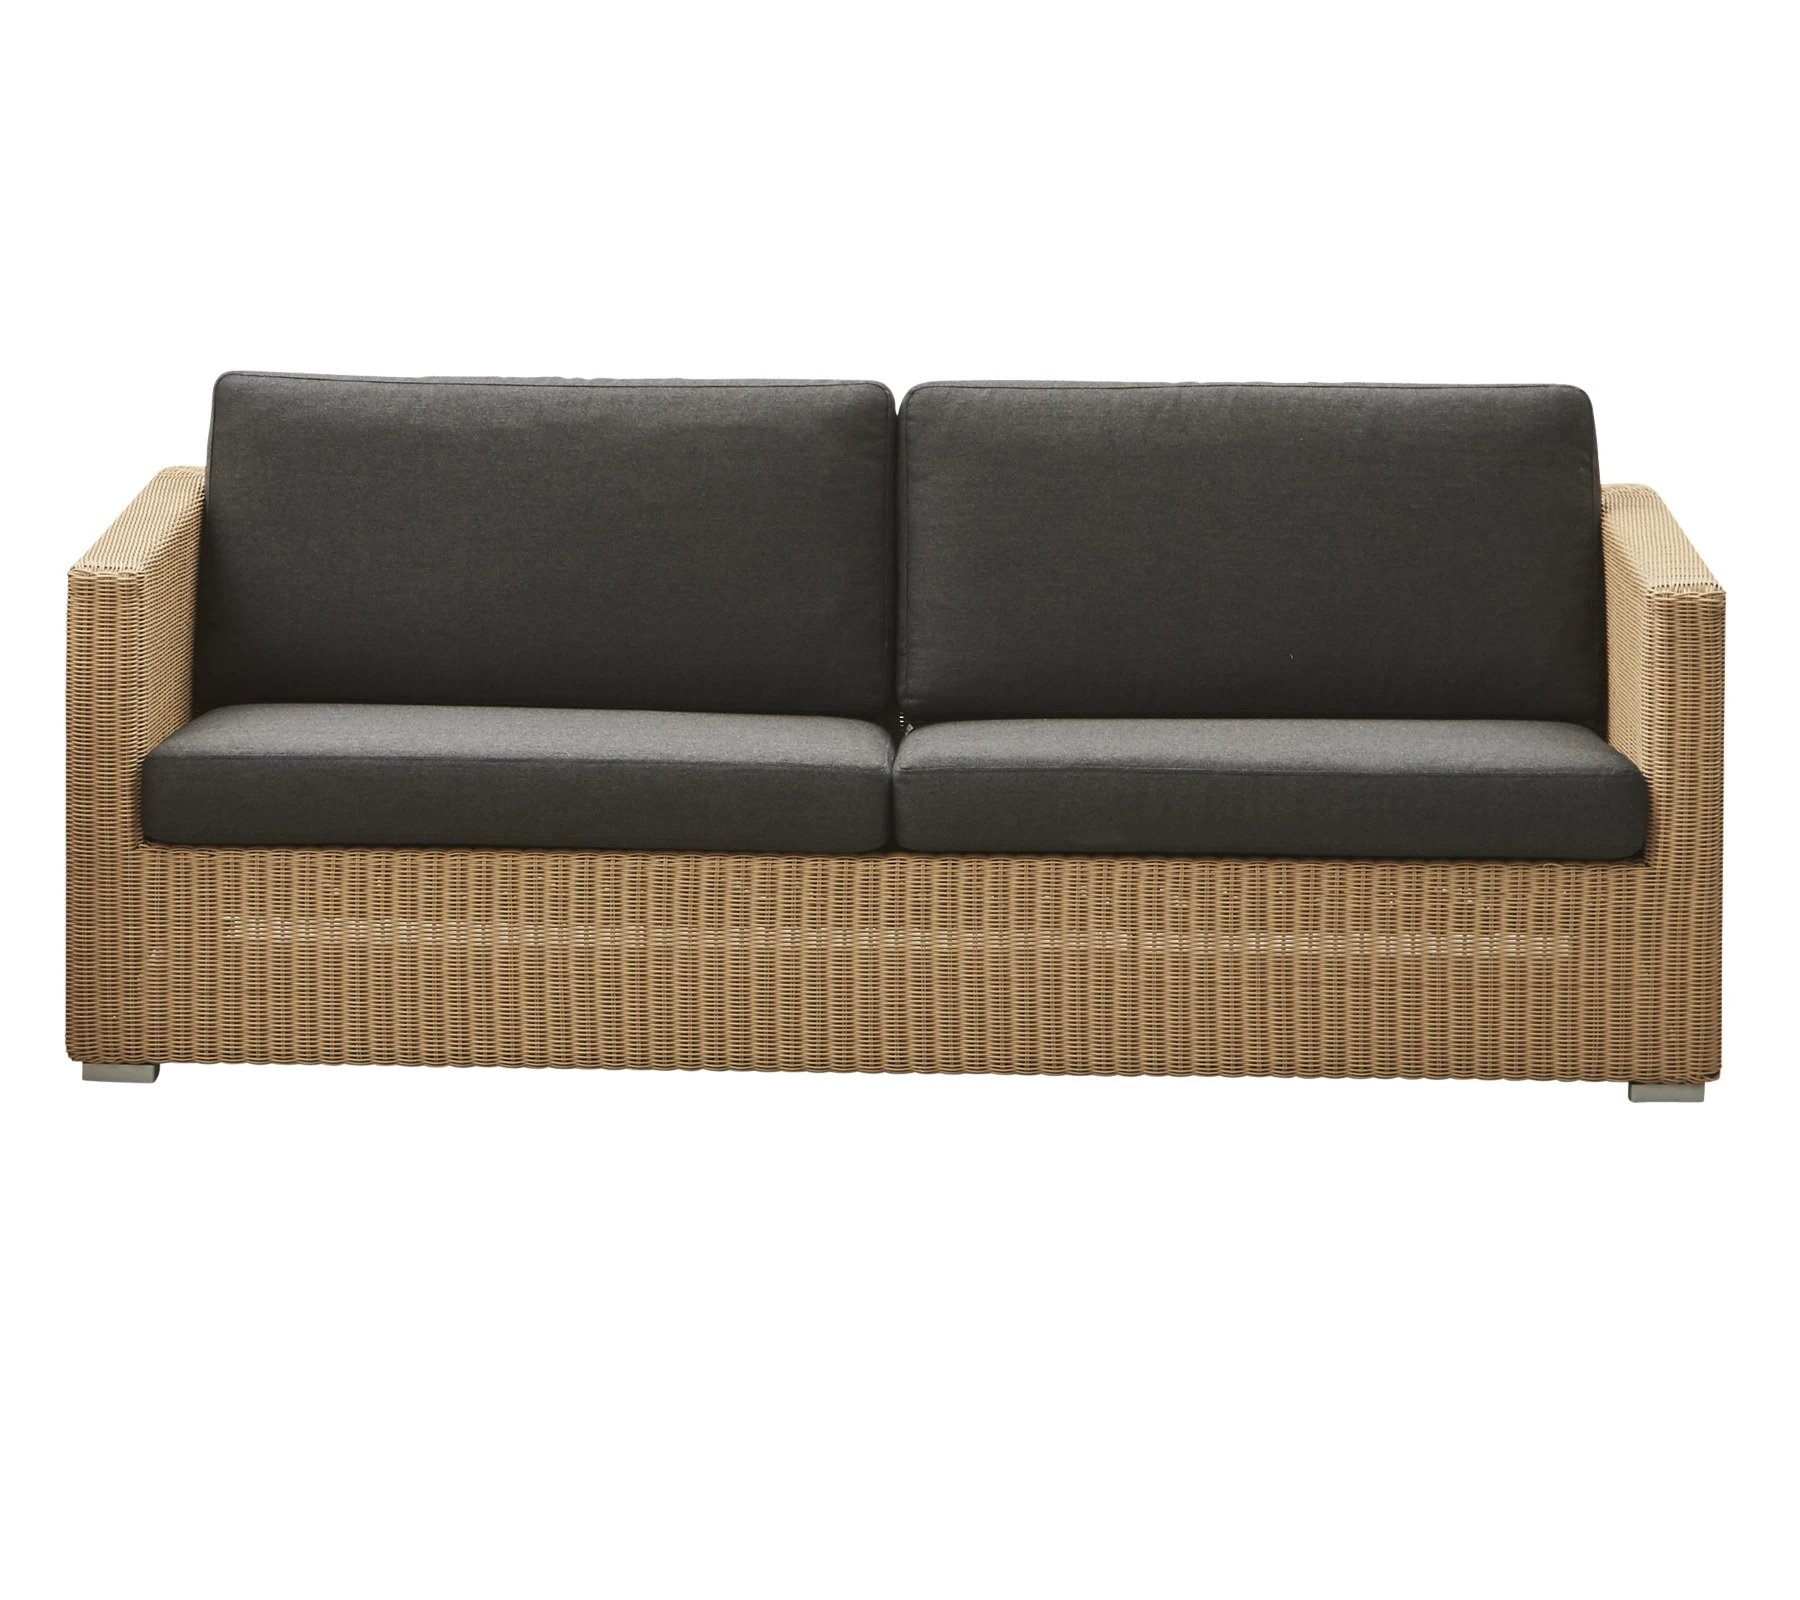 Chester 3-Seater Sofa from Cane-line